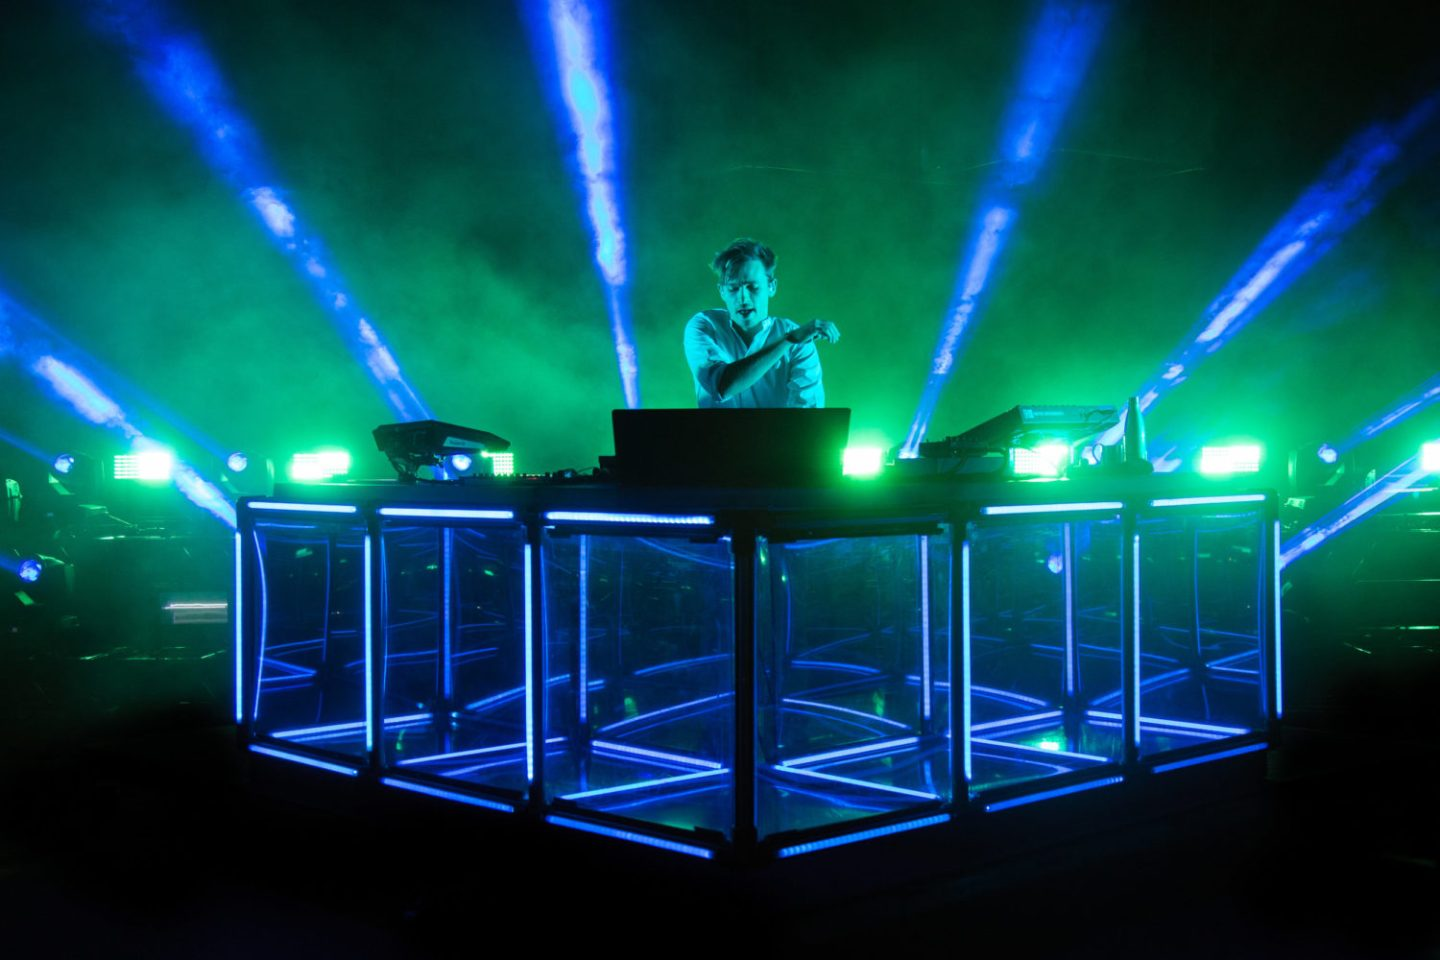 flume DJ on stage, blue setup with green lights, hand in the air